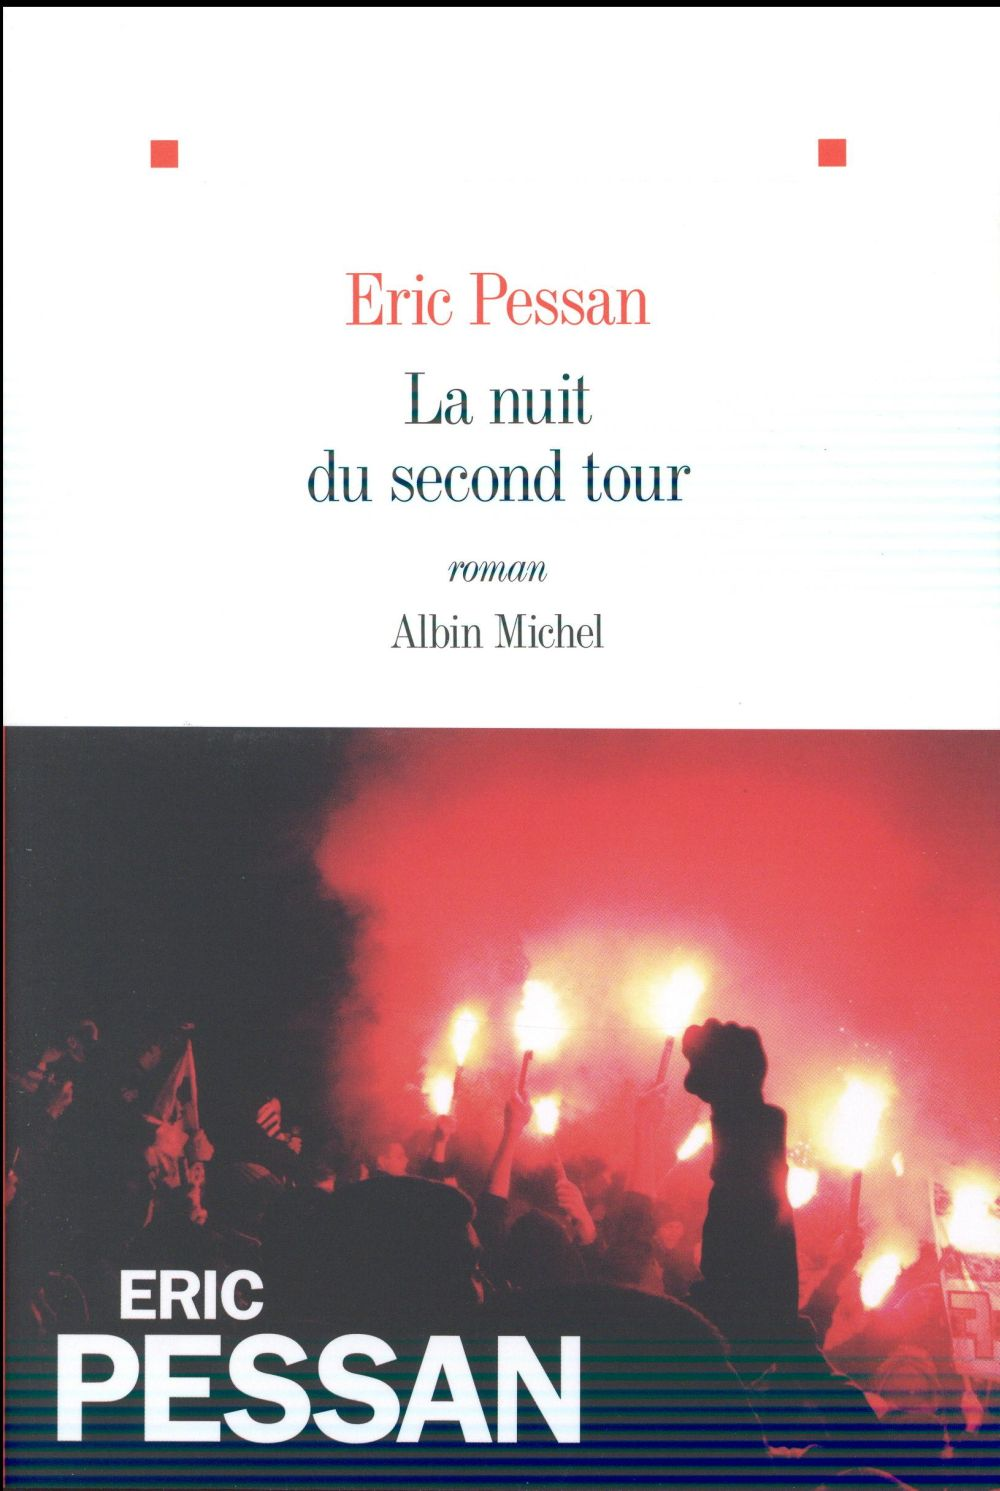 LA NUIT DU SECOND TOUR